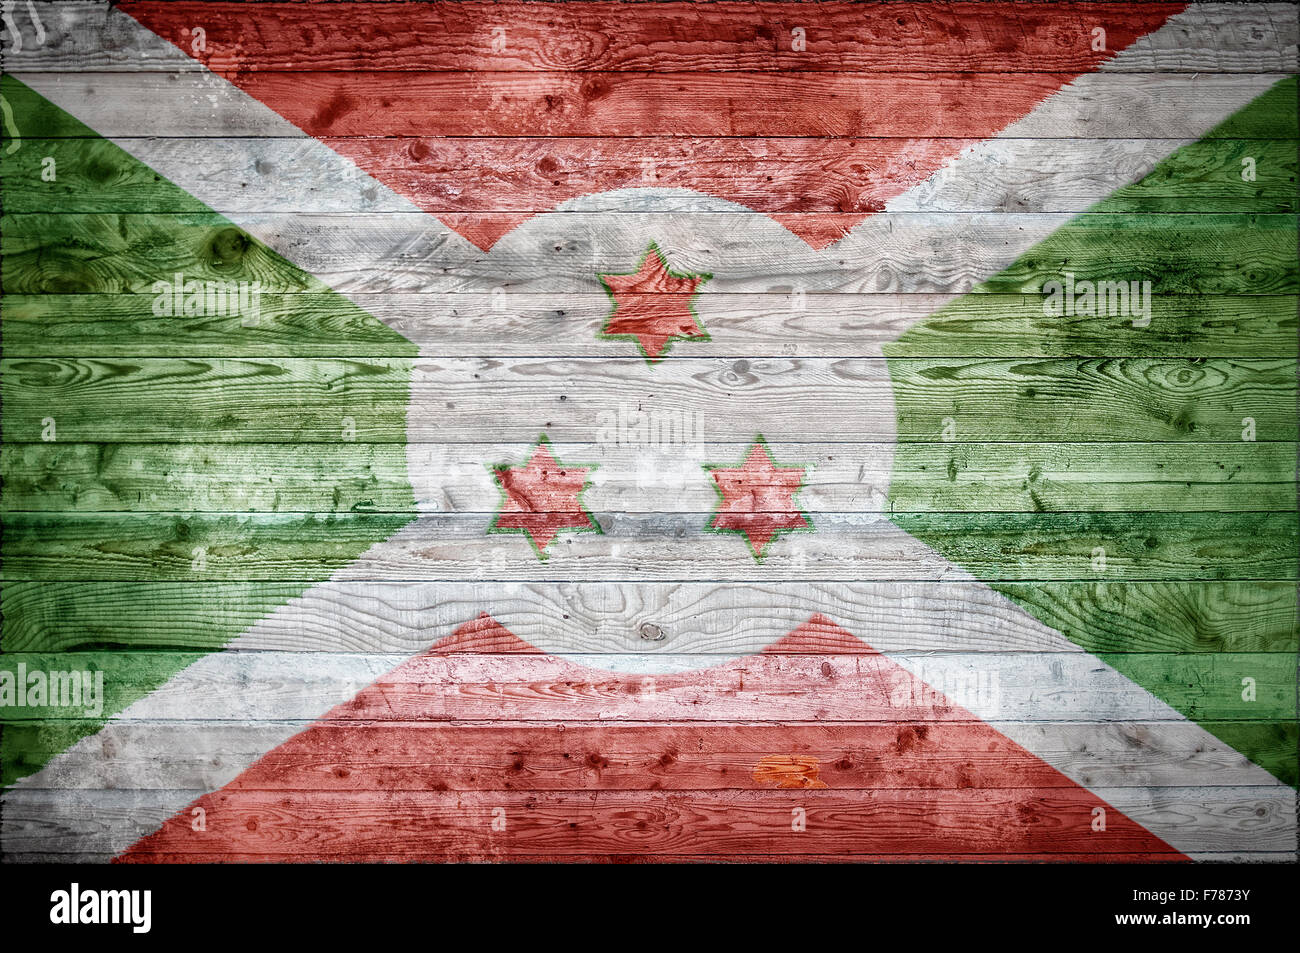 A vignetted background image of the flag of Burundi painted onto wooden boards of a wall or floor. - Stock Image